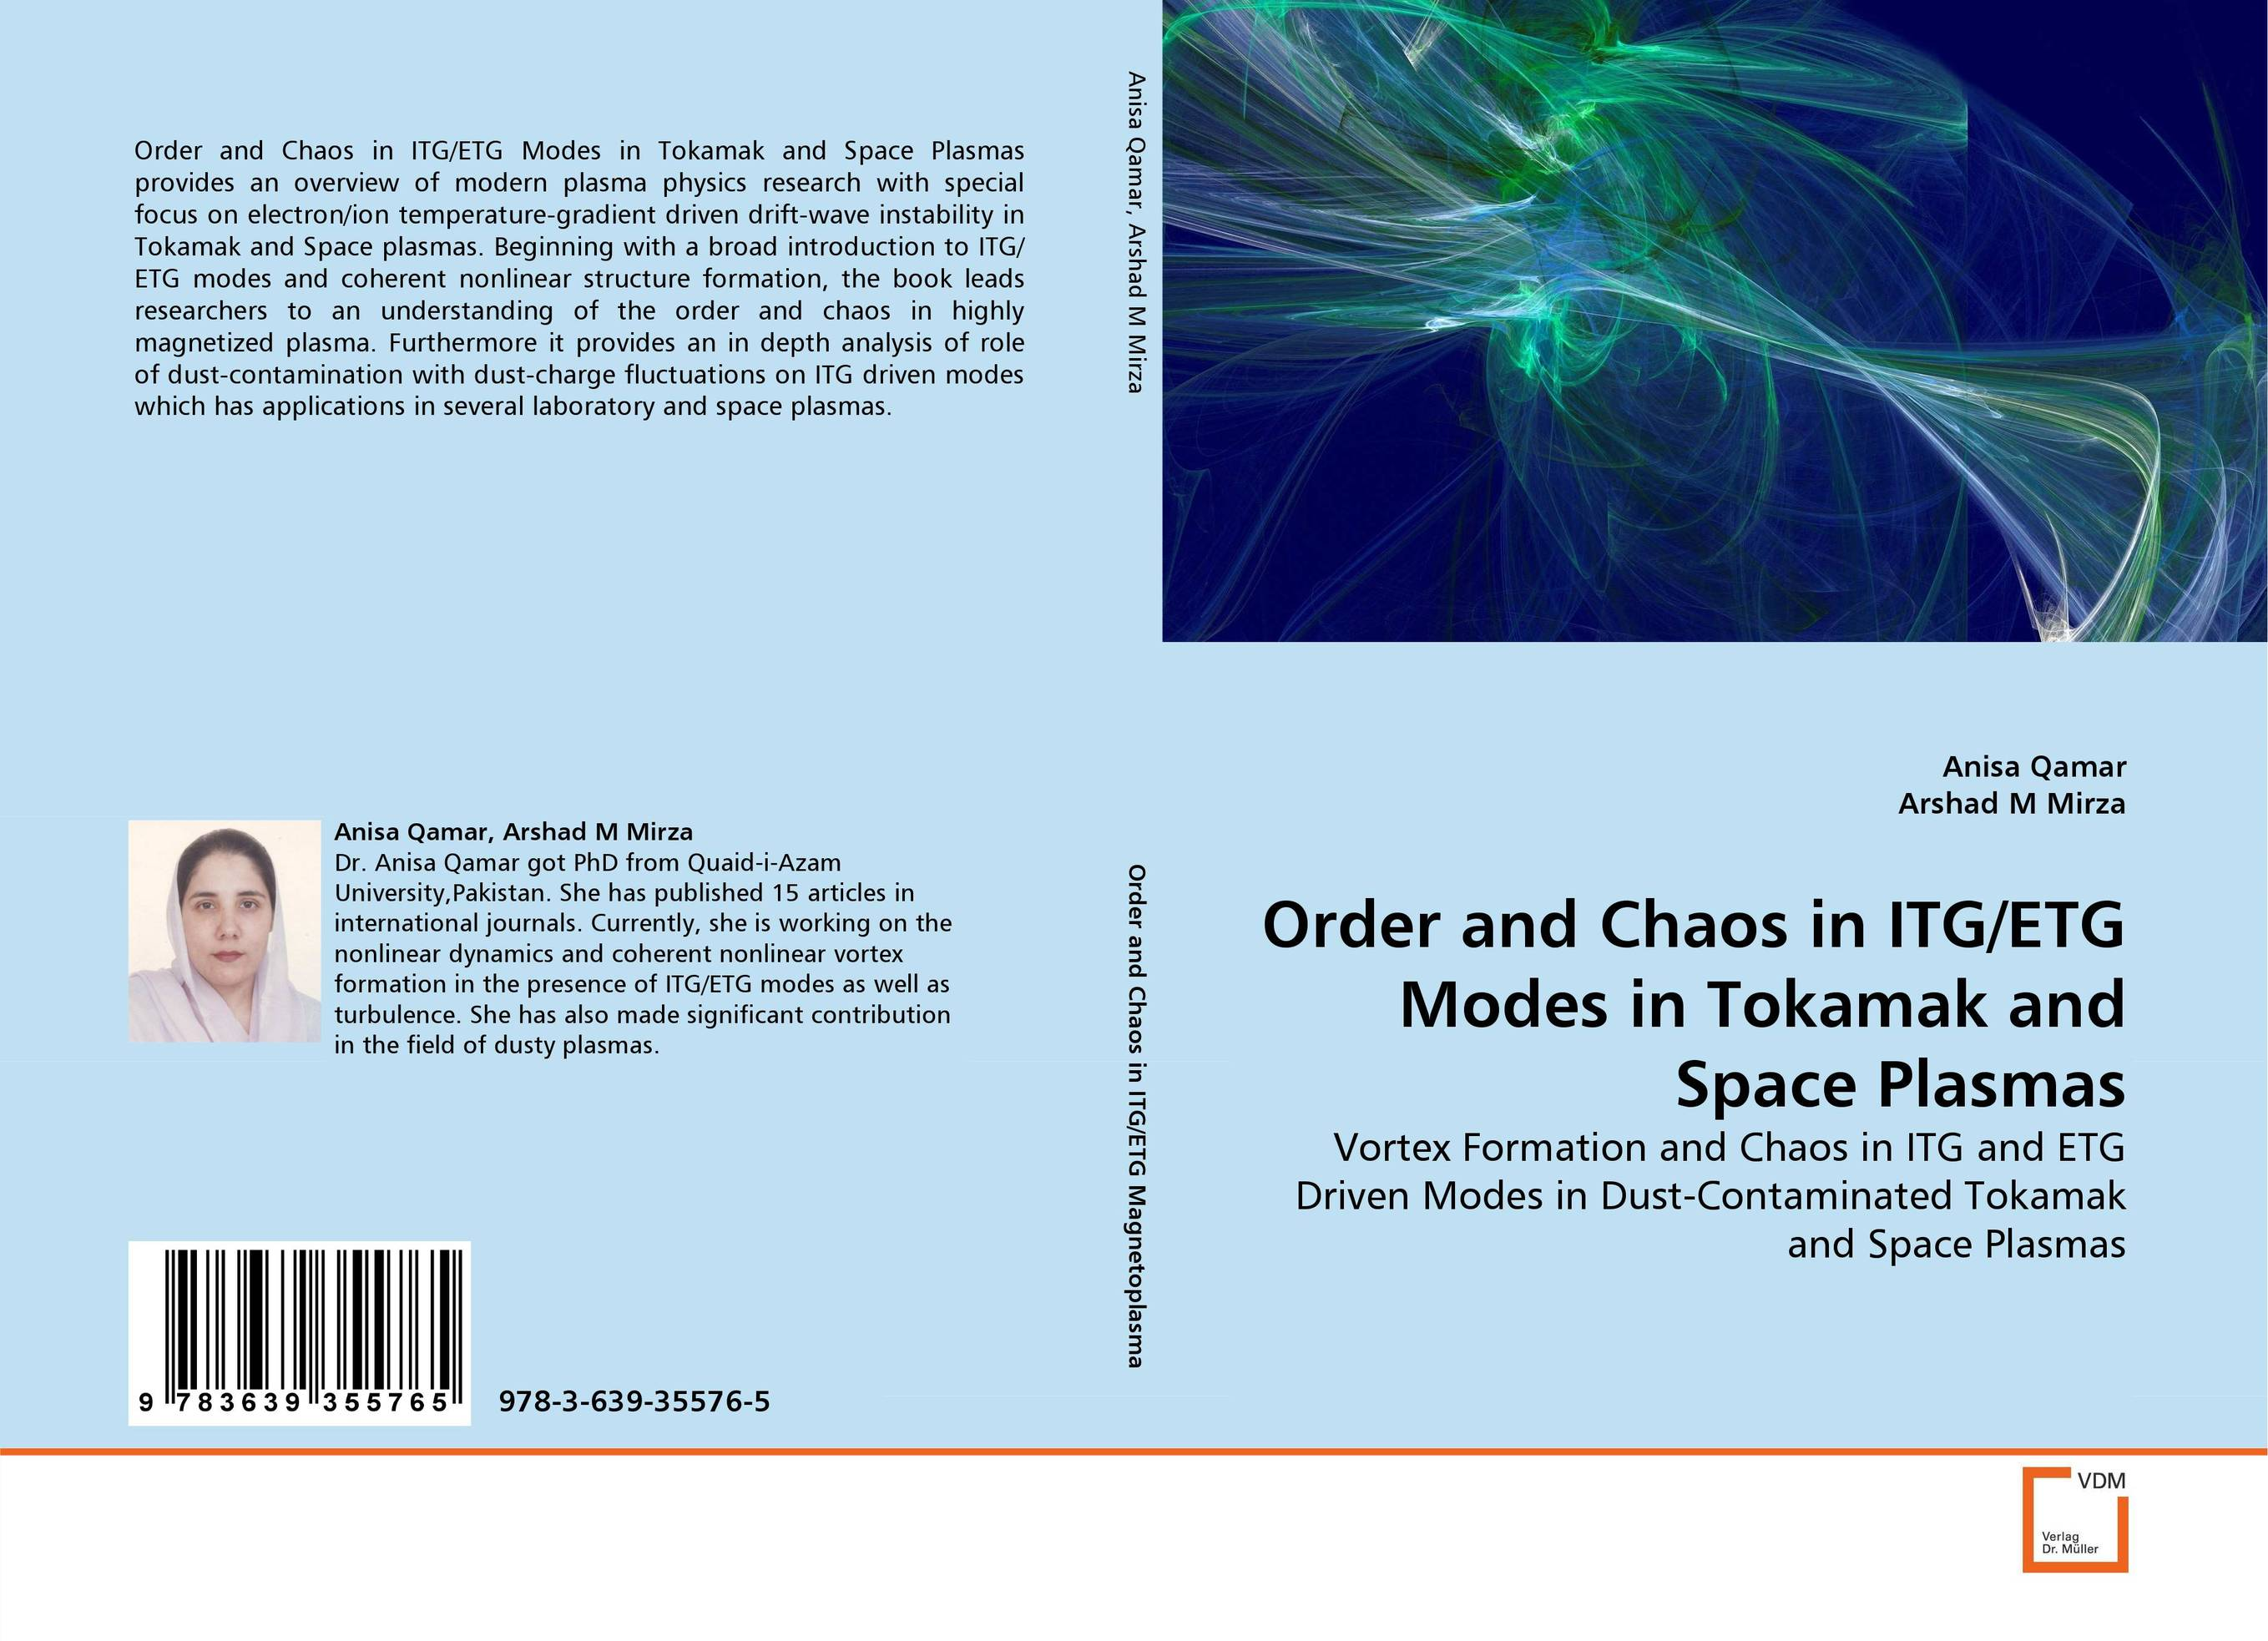 Zakazat.ru: Order and Chaos in ITG/ETG Modes in Tokamak and Space Plasmas